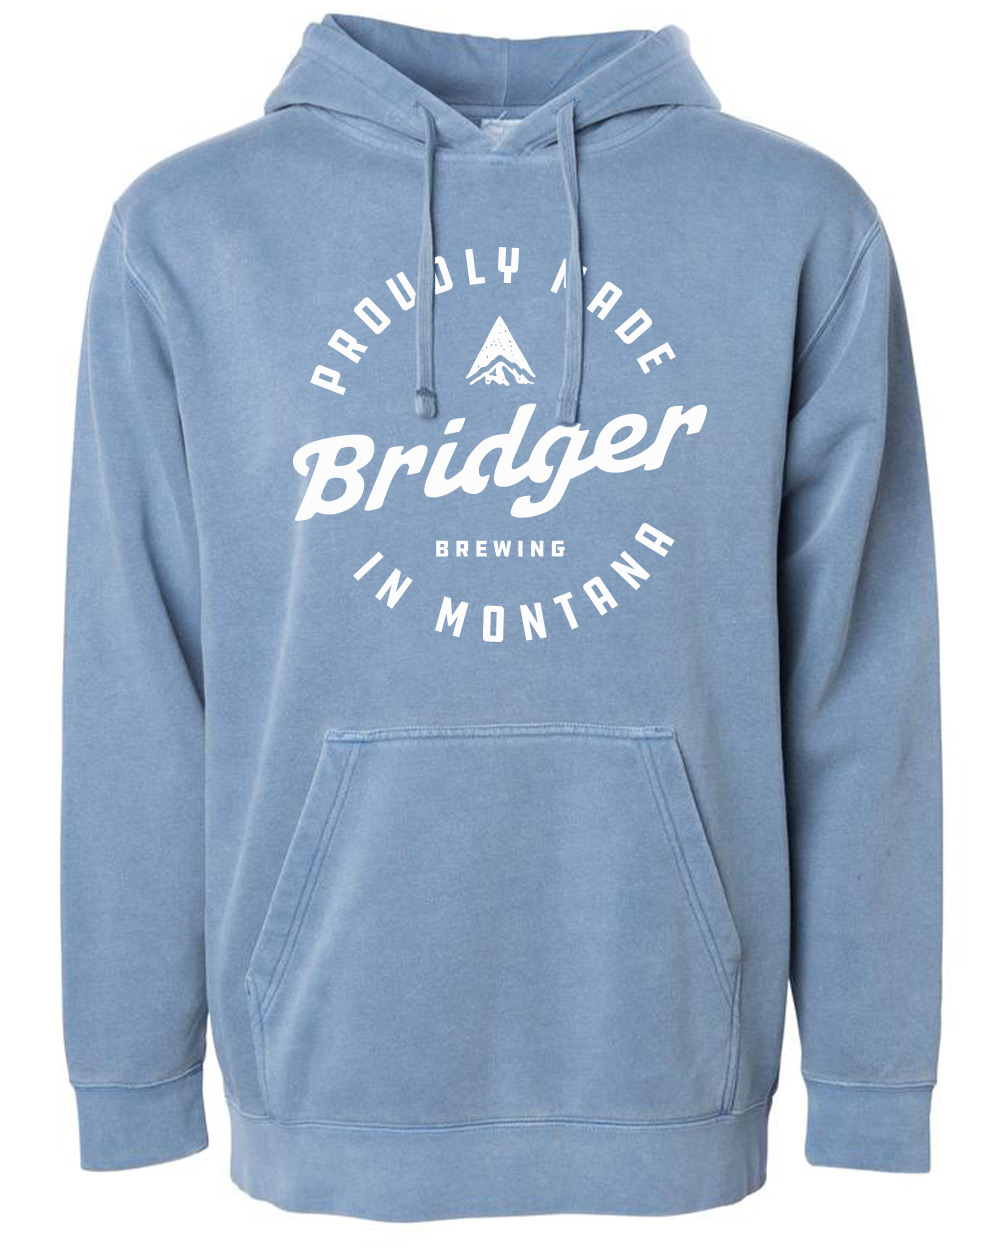 An 80/20 cotton/polyester blend with 100% cotton face, our unisex Bridger stamp pullover hoodie is super cozy and ready for your next outdoor adventure. The large Bridger stamp logo is featured on the front.